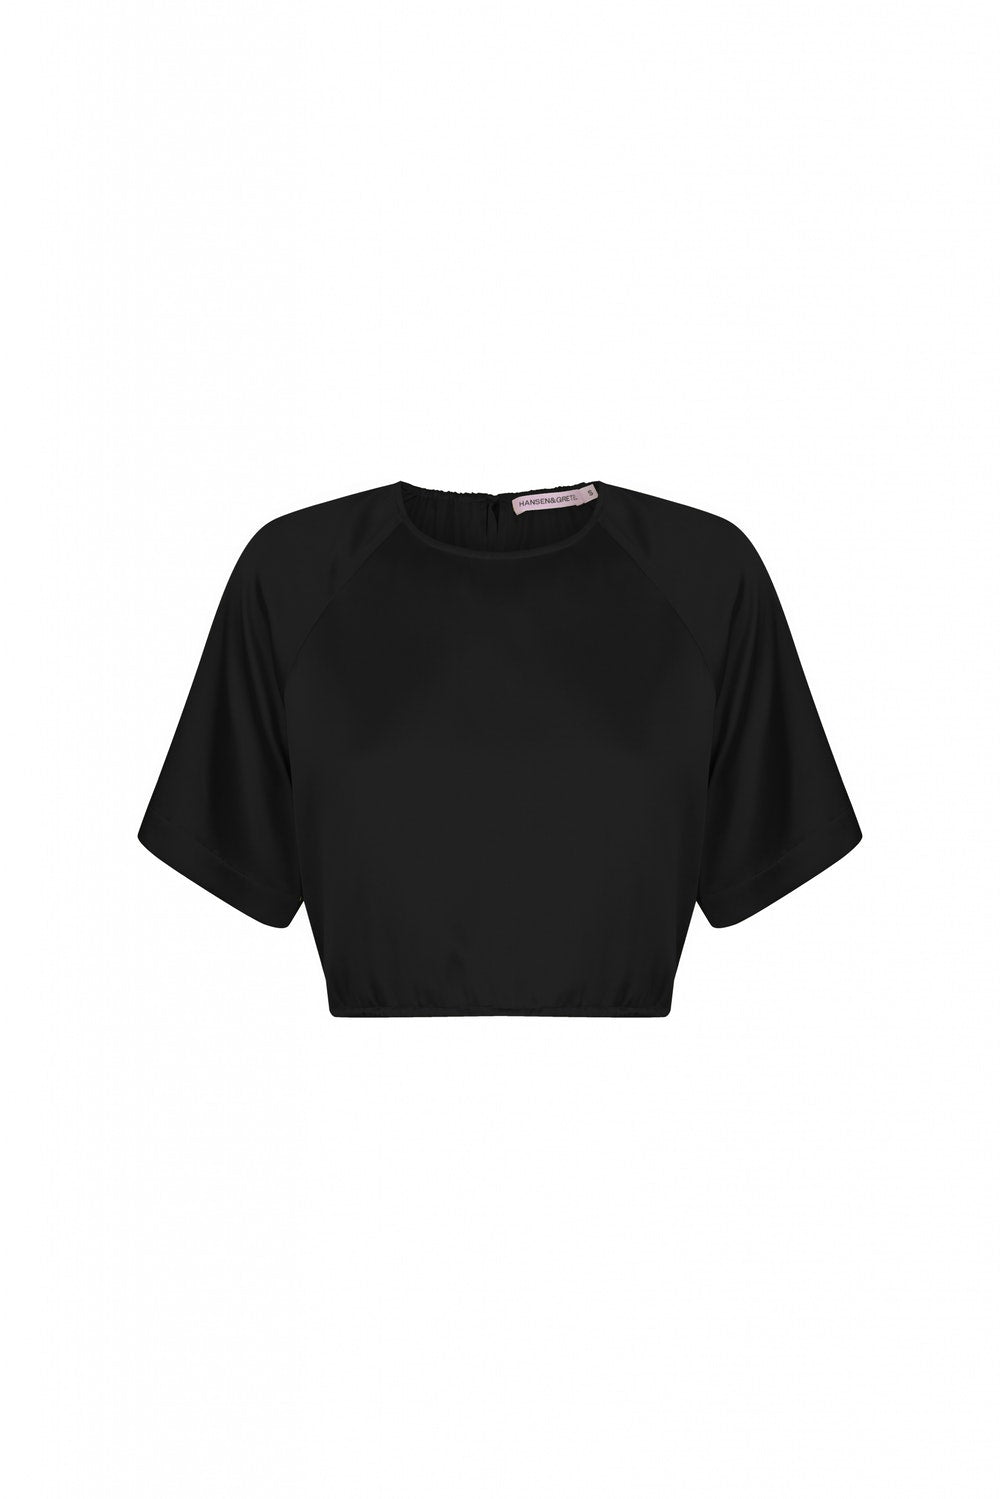 Thandie Top Black | Hansen & Gretal